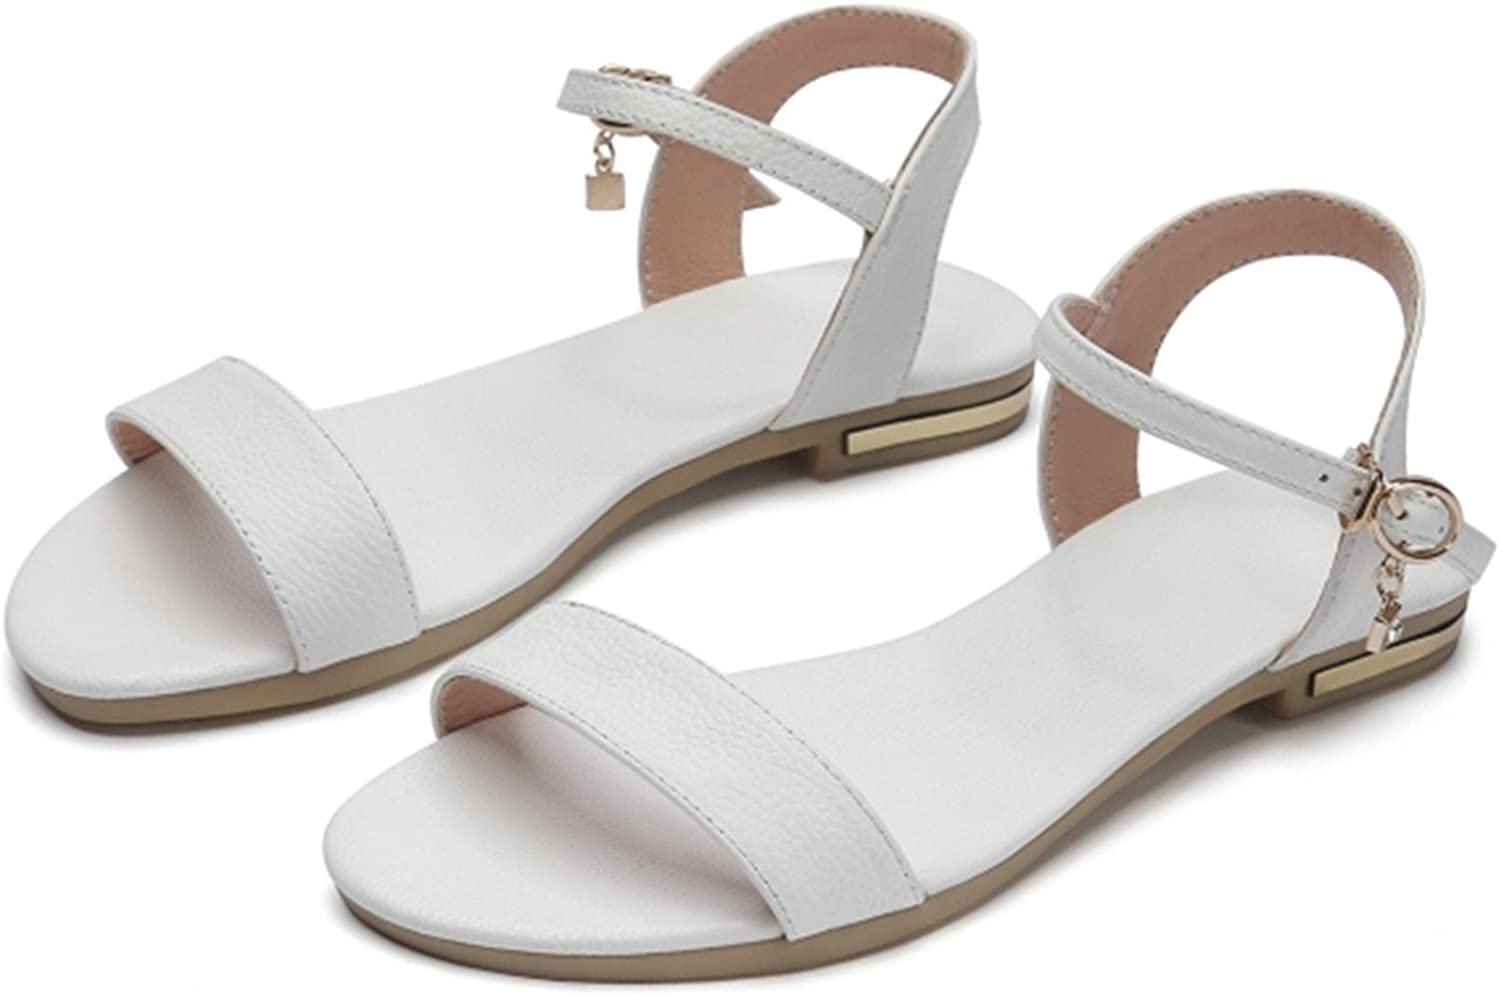 Women Sandals Genuine Leather Soft Rubber Sole Basic Buckle Strap Size 34-43 Women's Summer shoes SS168